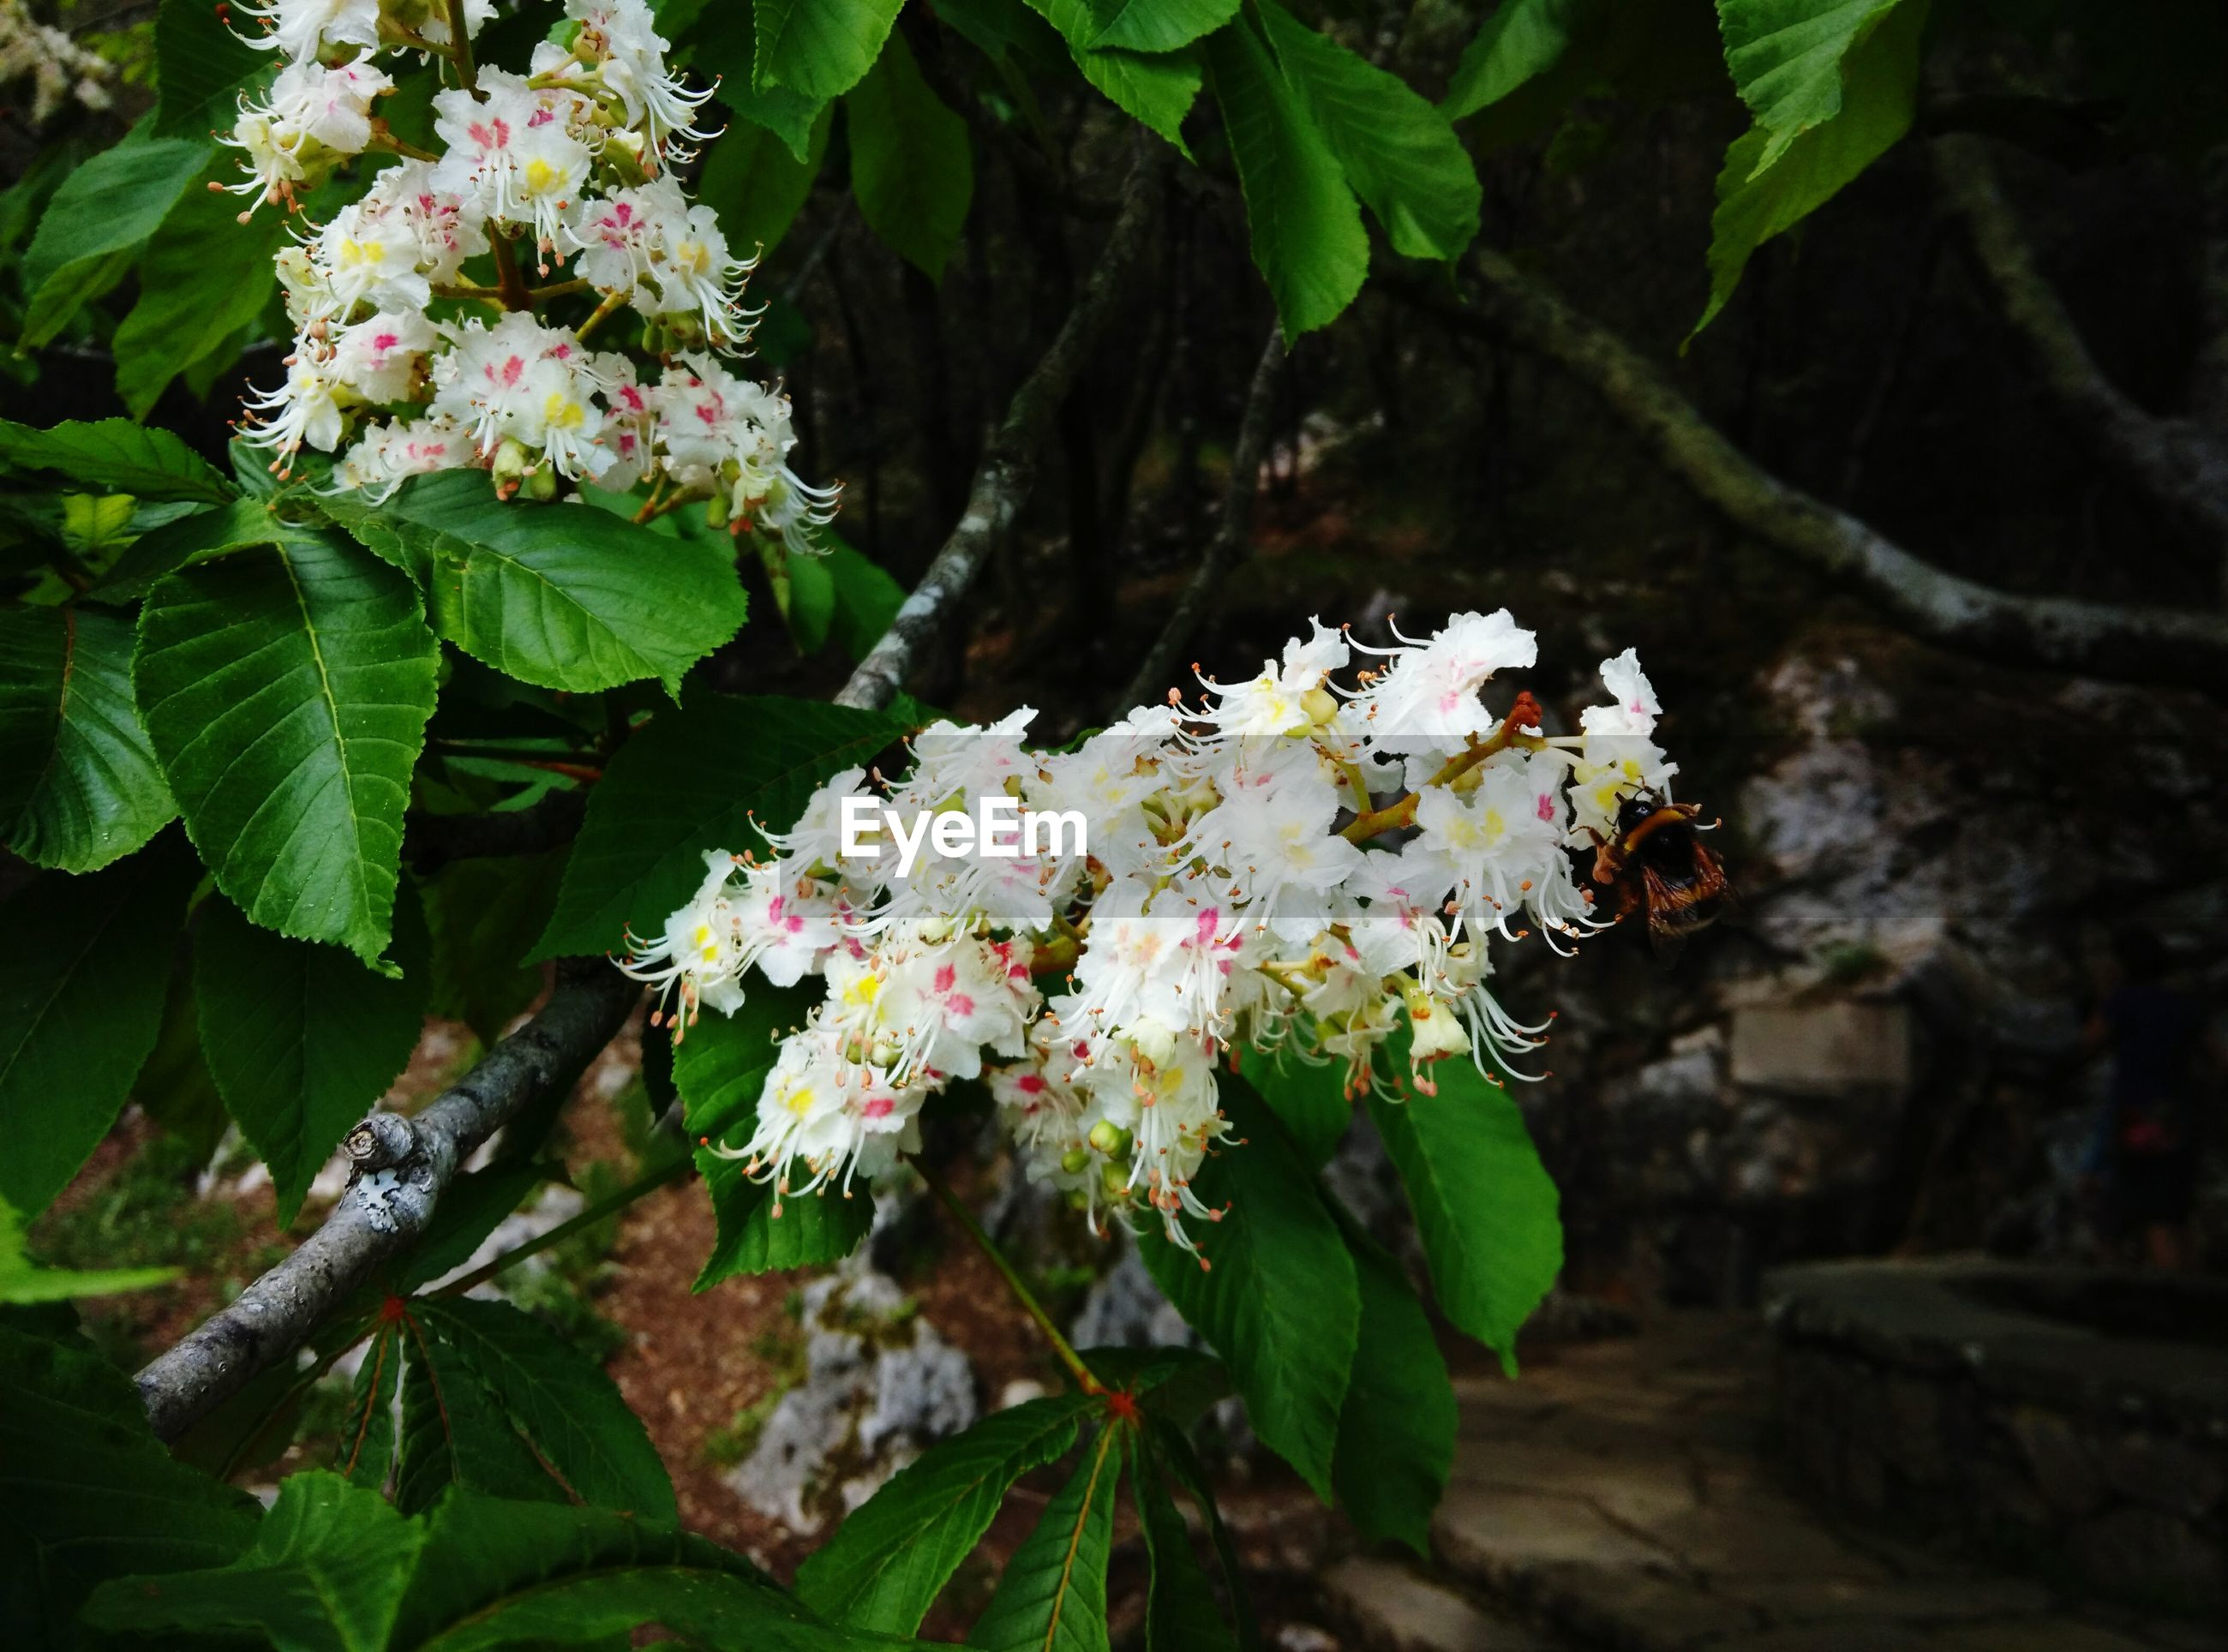 flower, freshness, petal, growth, fragility, beauty in nature, leaf, flower head, blooming, plant, nature, in bloom, blossom, white color, close-up, green color, focus on foreground, high angle view, outdoors, park - man made space